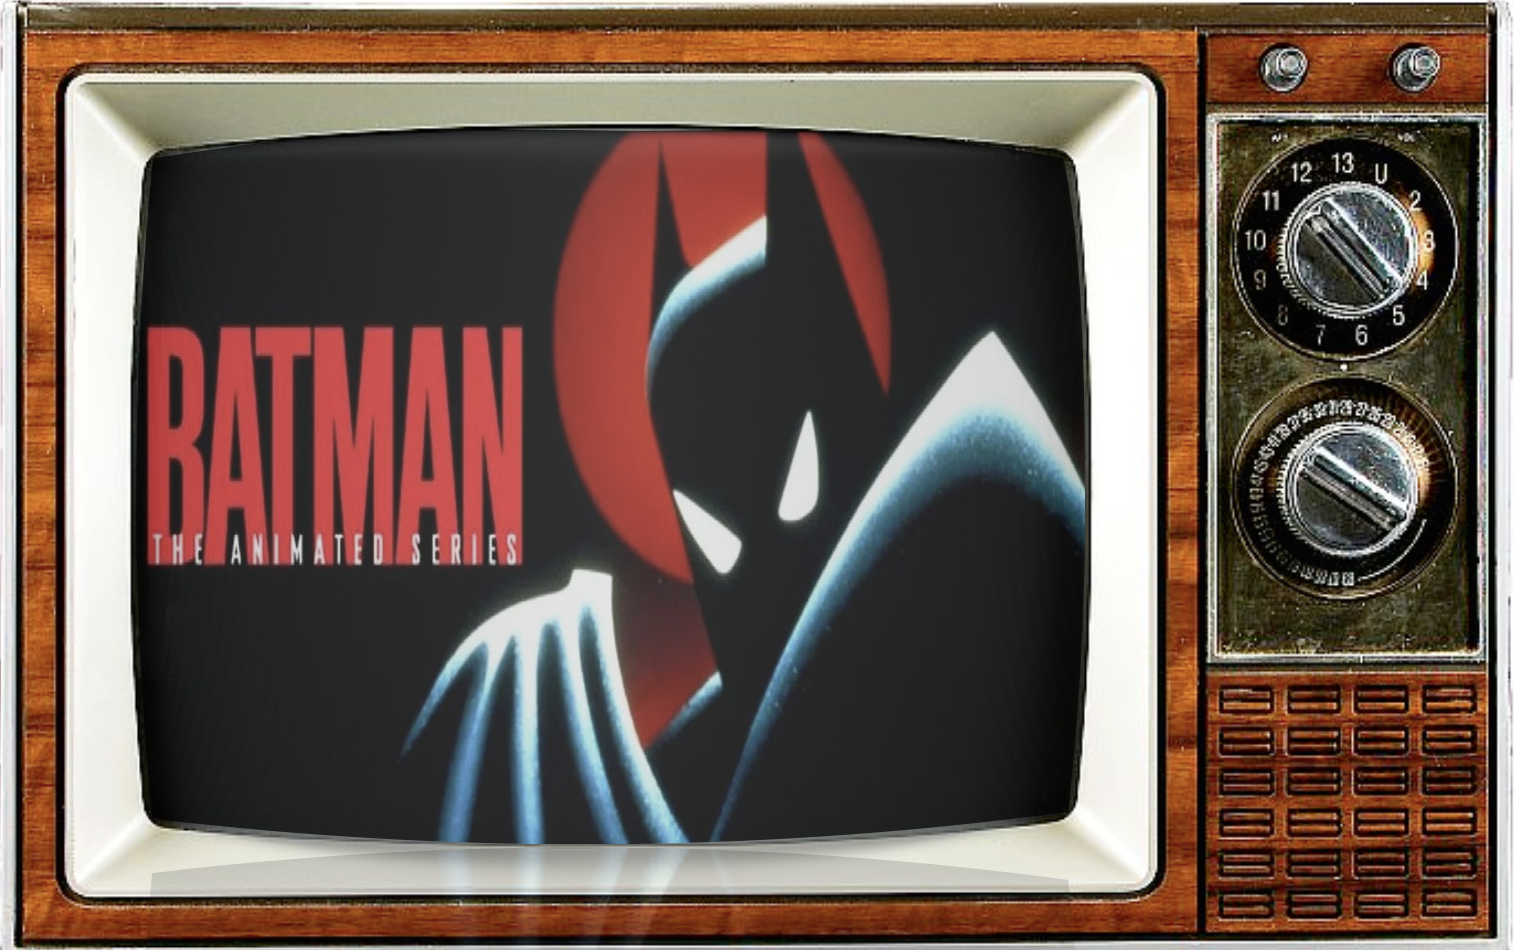 SMC Episode 75: Batman The Animated Series: Still Crazy Good After All These Years a SDCC Roundtable Discussion